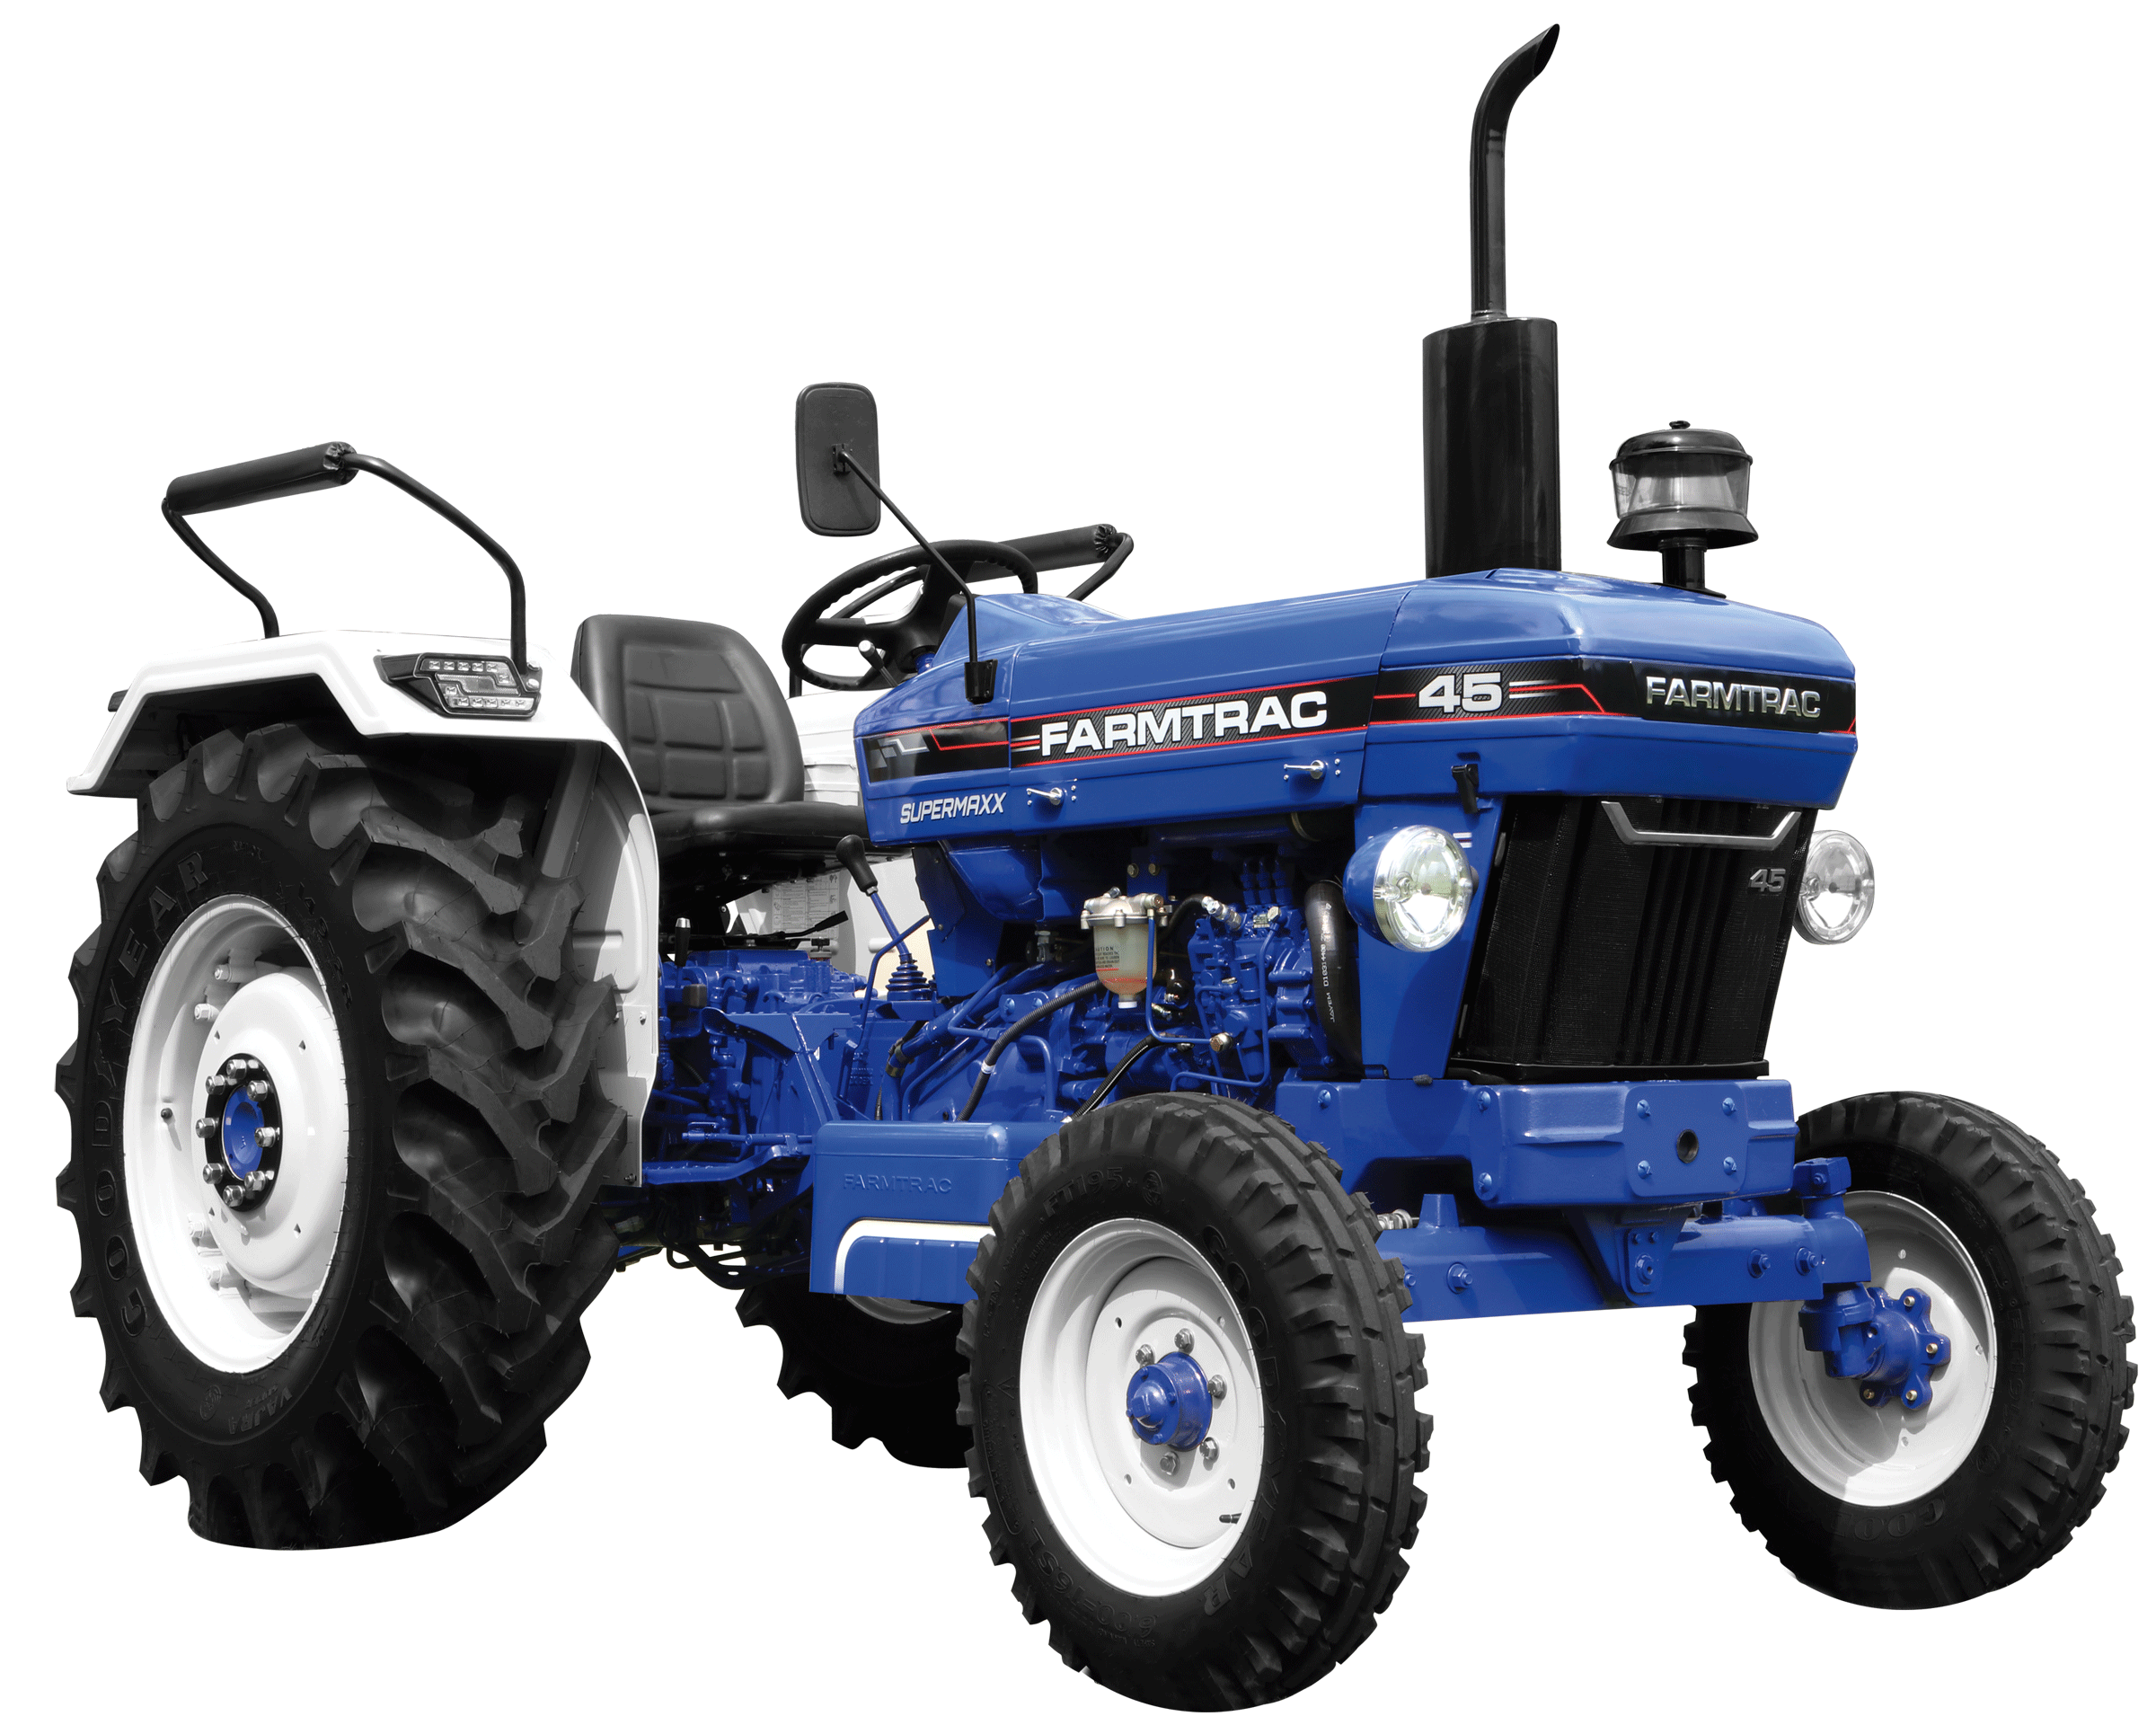 https://images.tractorgyan.com/uploads/236/farmtrac-45-classic-tractorgyan.png